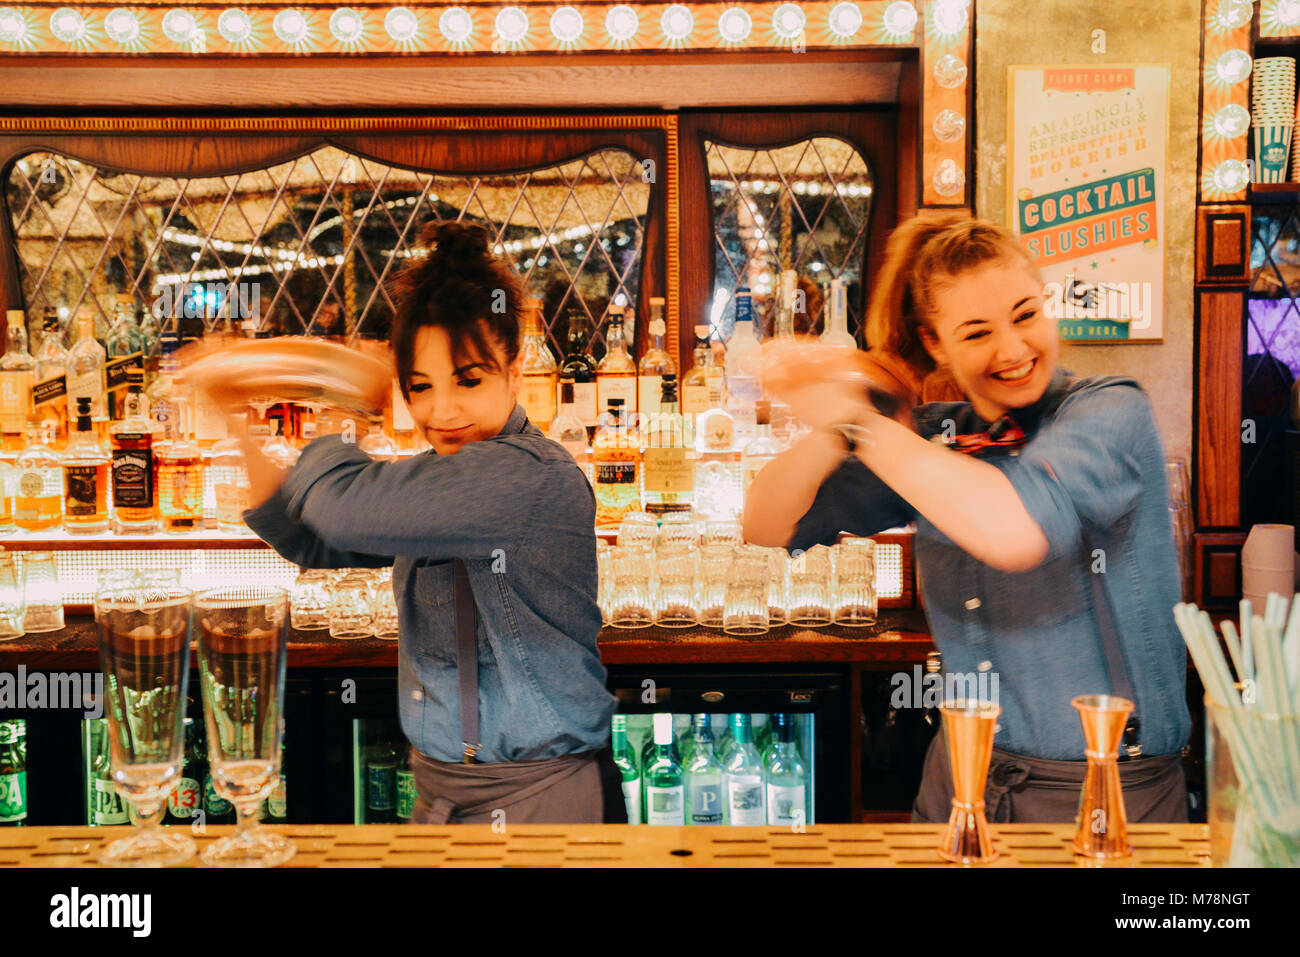 Two female bartenders mix drinks at a bright carnival fair style bar counter at the Flight Cub, a vintage social Stock Photo